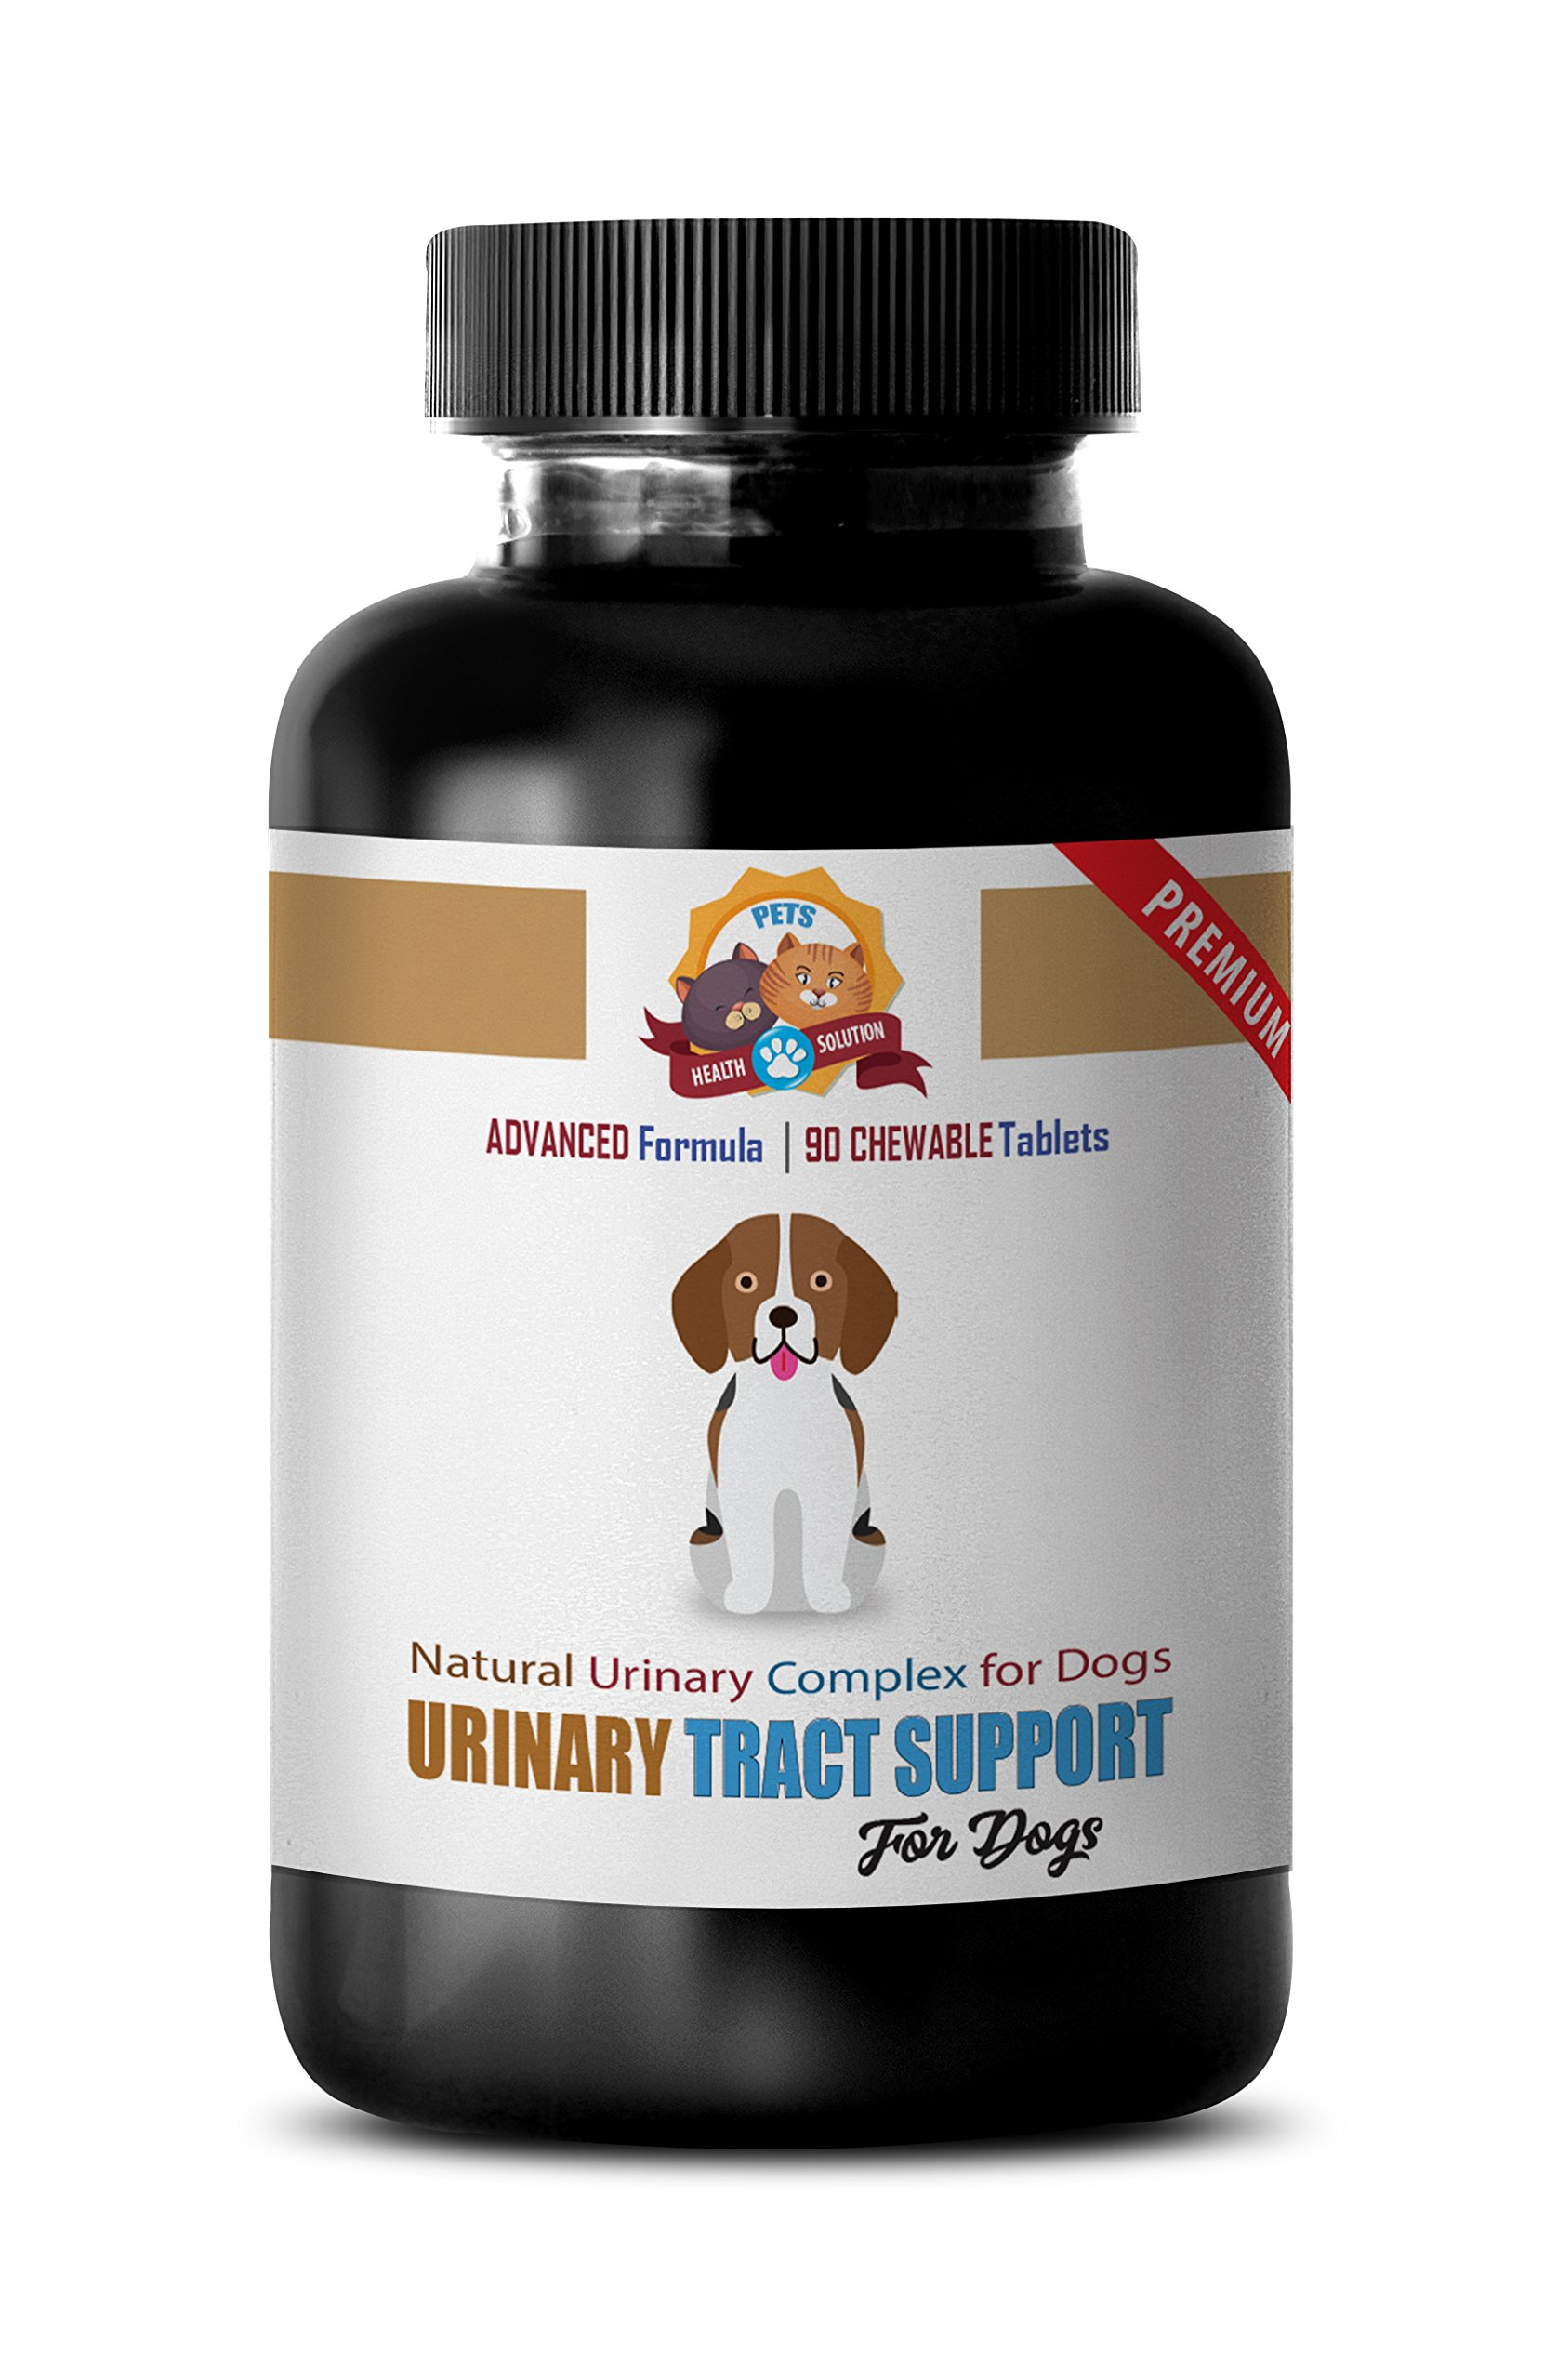 PETS HEALTH SOLUTION dog urinary health food - NATURAL URINARY TRACT SUPPORT - DOG TREATS - PREMIUM ADVANCED COMPLEX - dog marshmallow root - 90 Treats (1 Bottle)